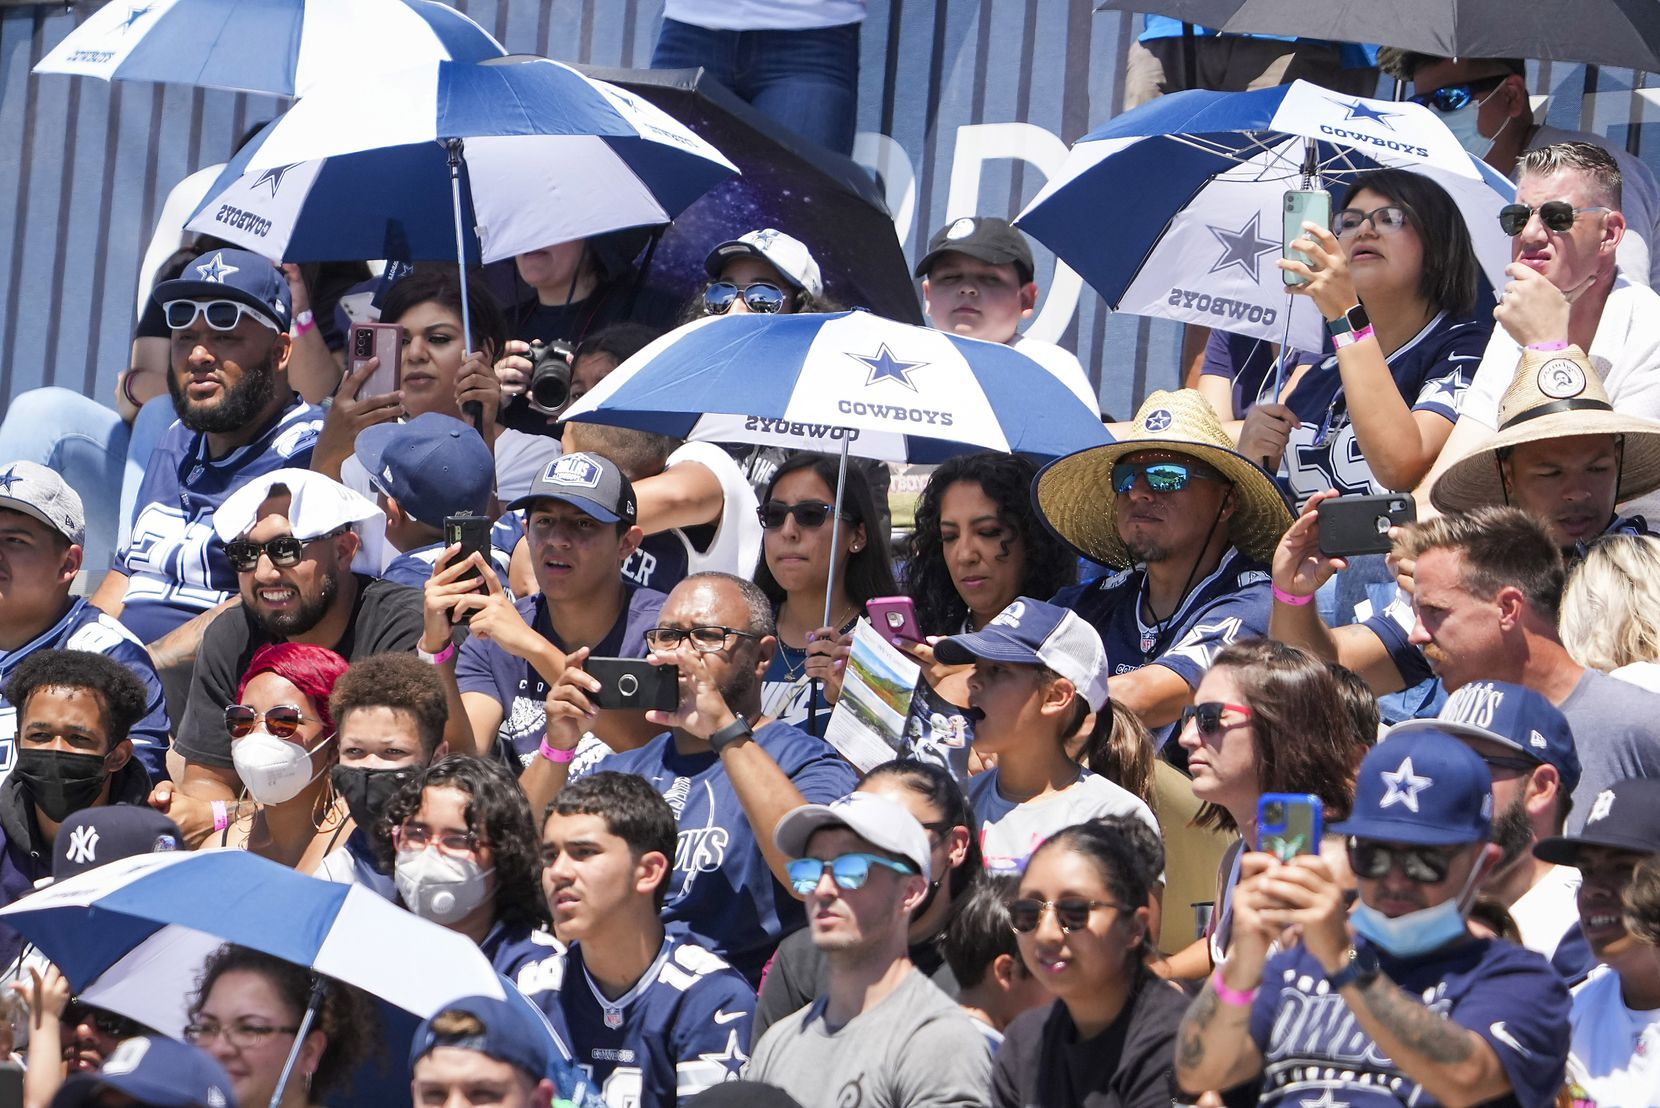 Dallas Cowboys fans use umbrellas for shade as they watch a practice at training camp on Sunday, Aug. 1, 2021, in Oxnard, Calif. (Smiley N. Pool/The Dallas Morning News)